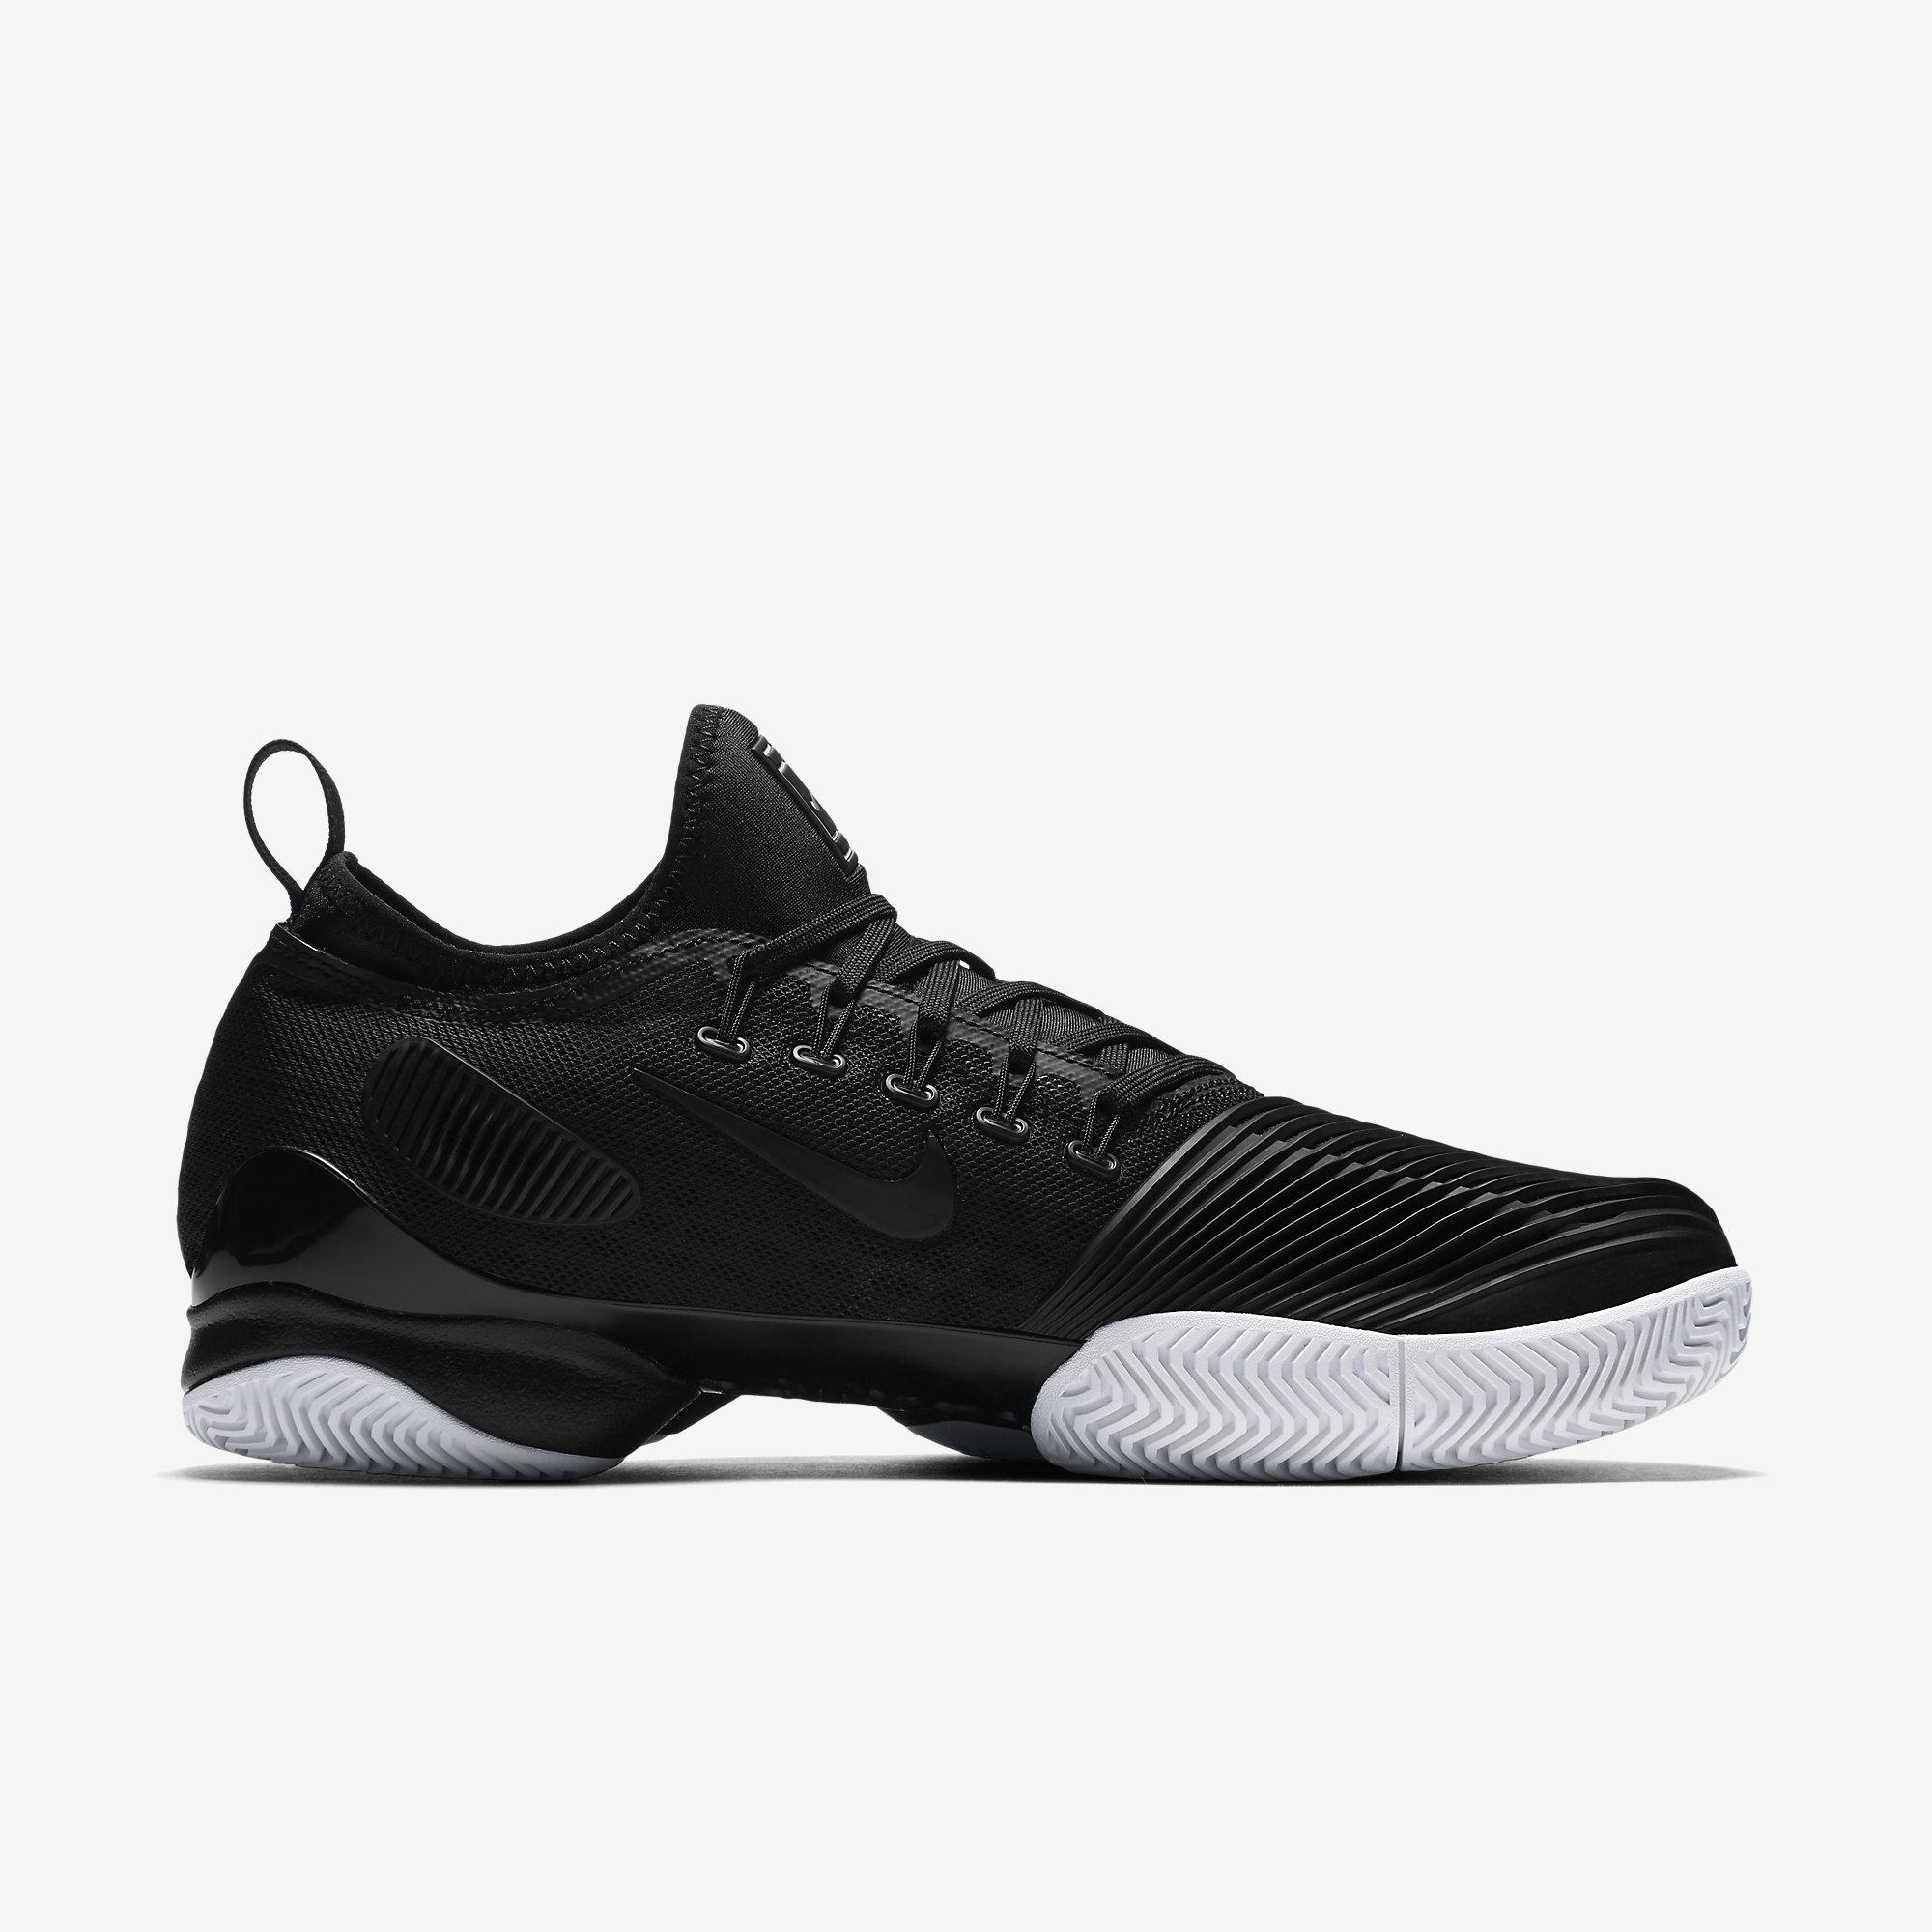 df07c7de78a1 Nike Mens Air Zoom Ultra React Tennis Shoes - Black - Tennisnuts.com